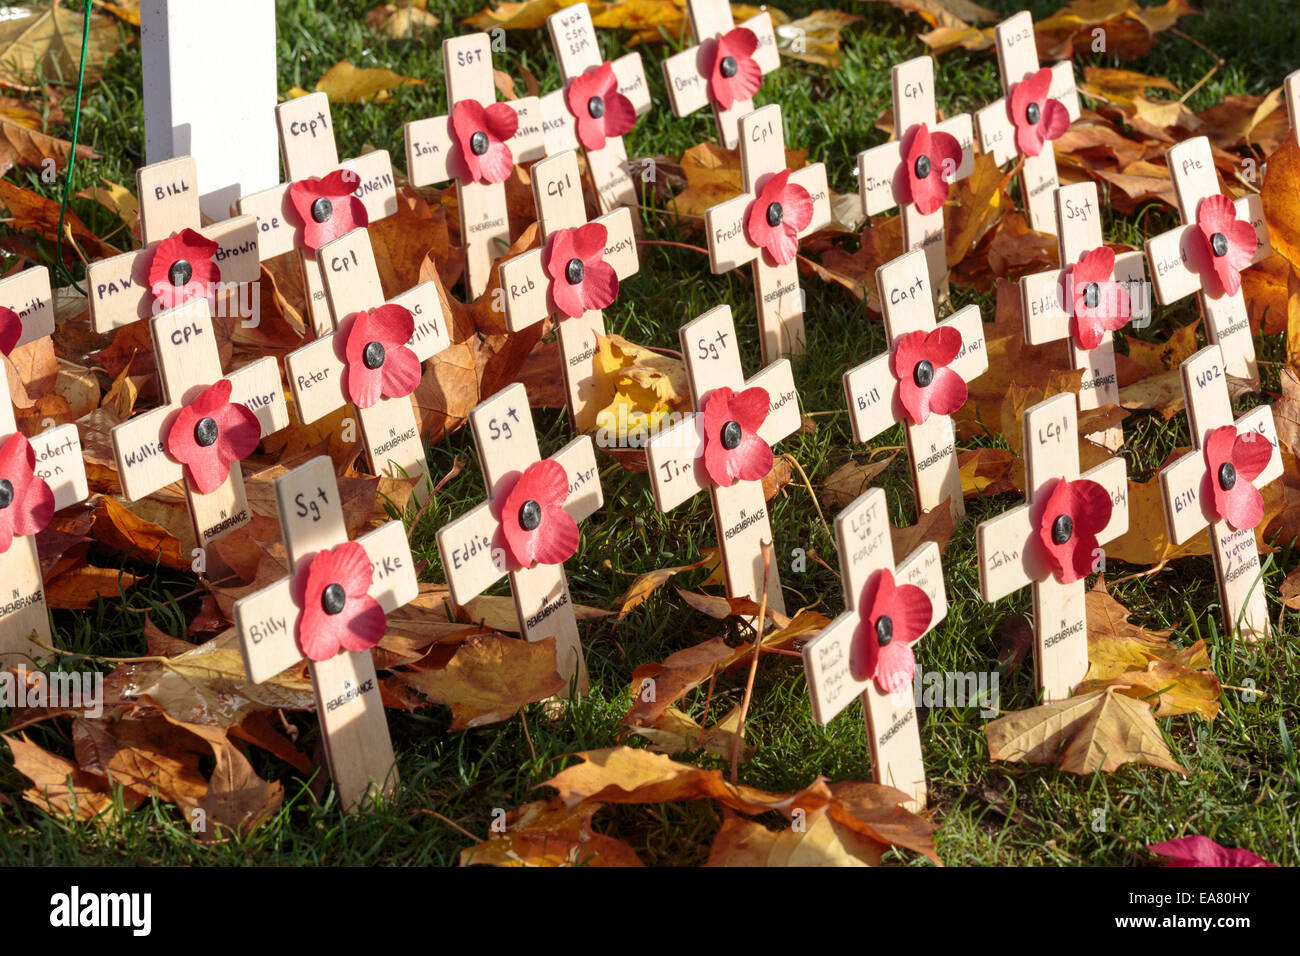 Remembrance day crosses and poppies, George Square memorial garden, Glasgow, Scotland, UK - Stock Image